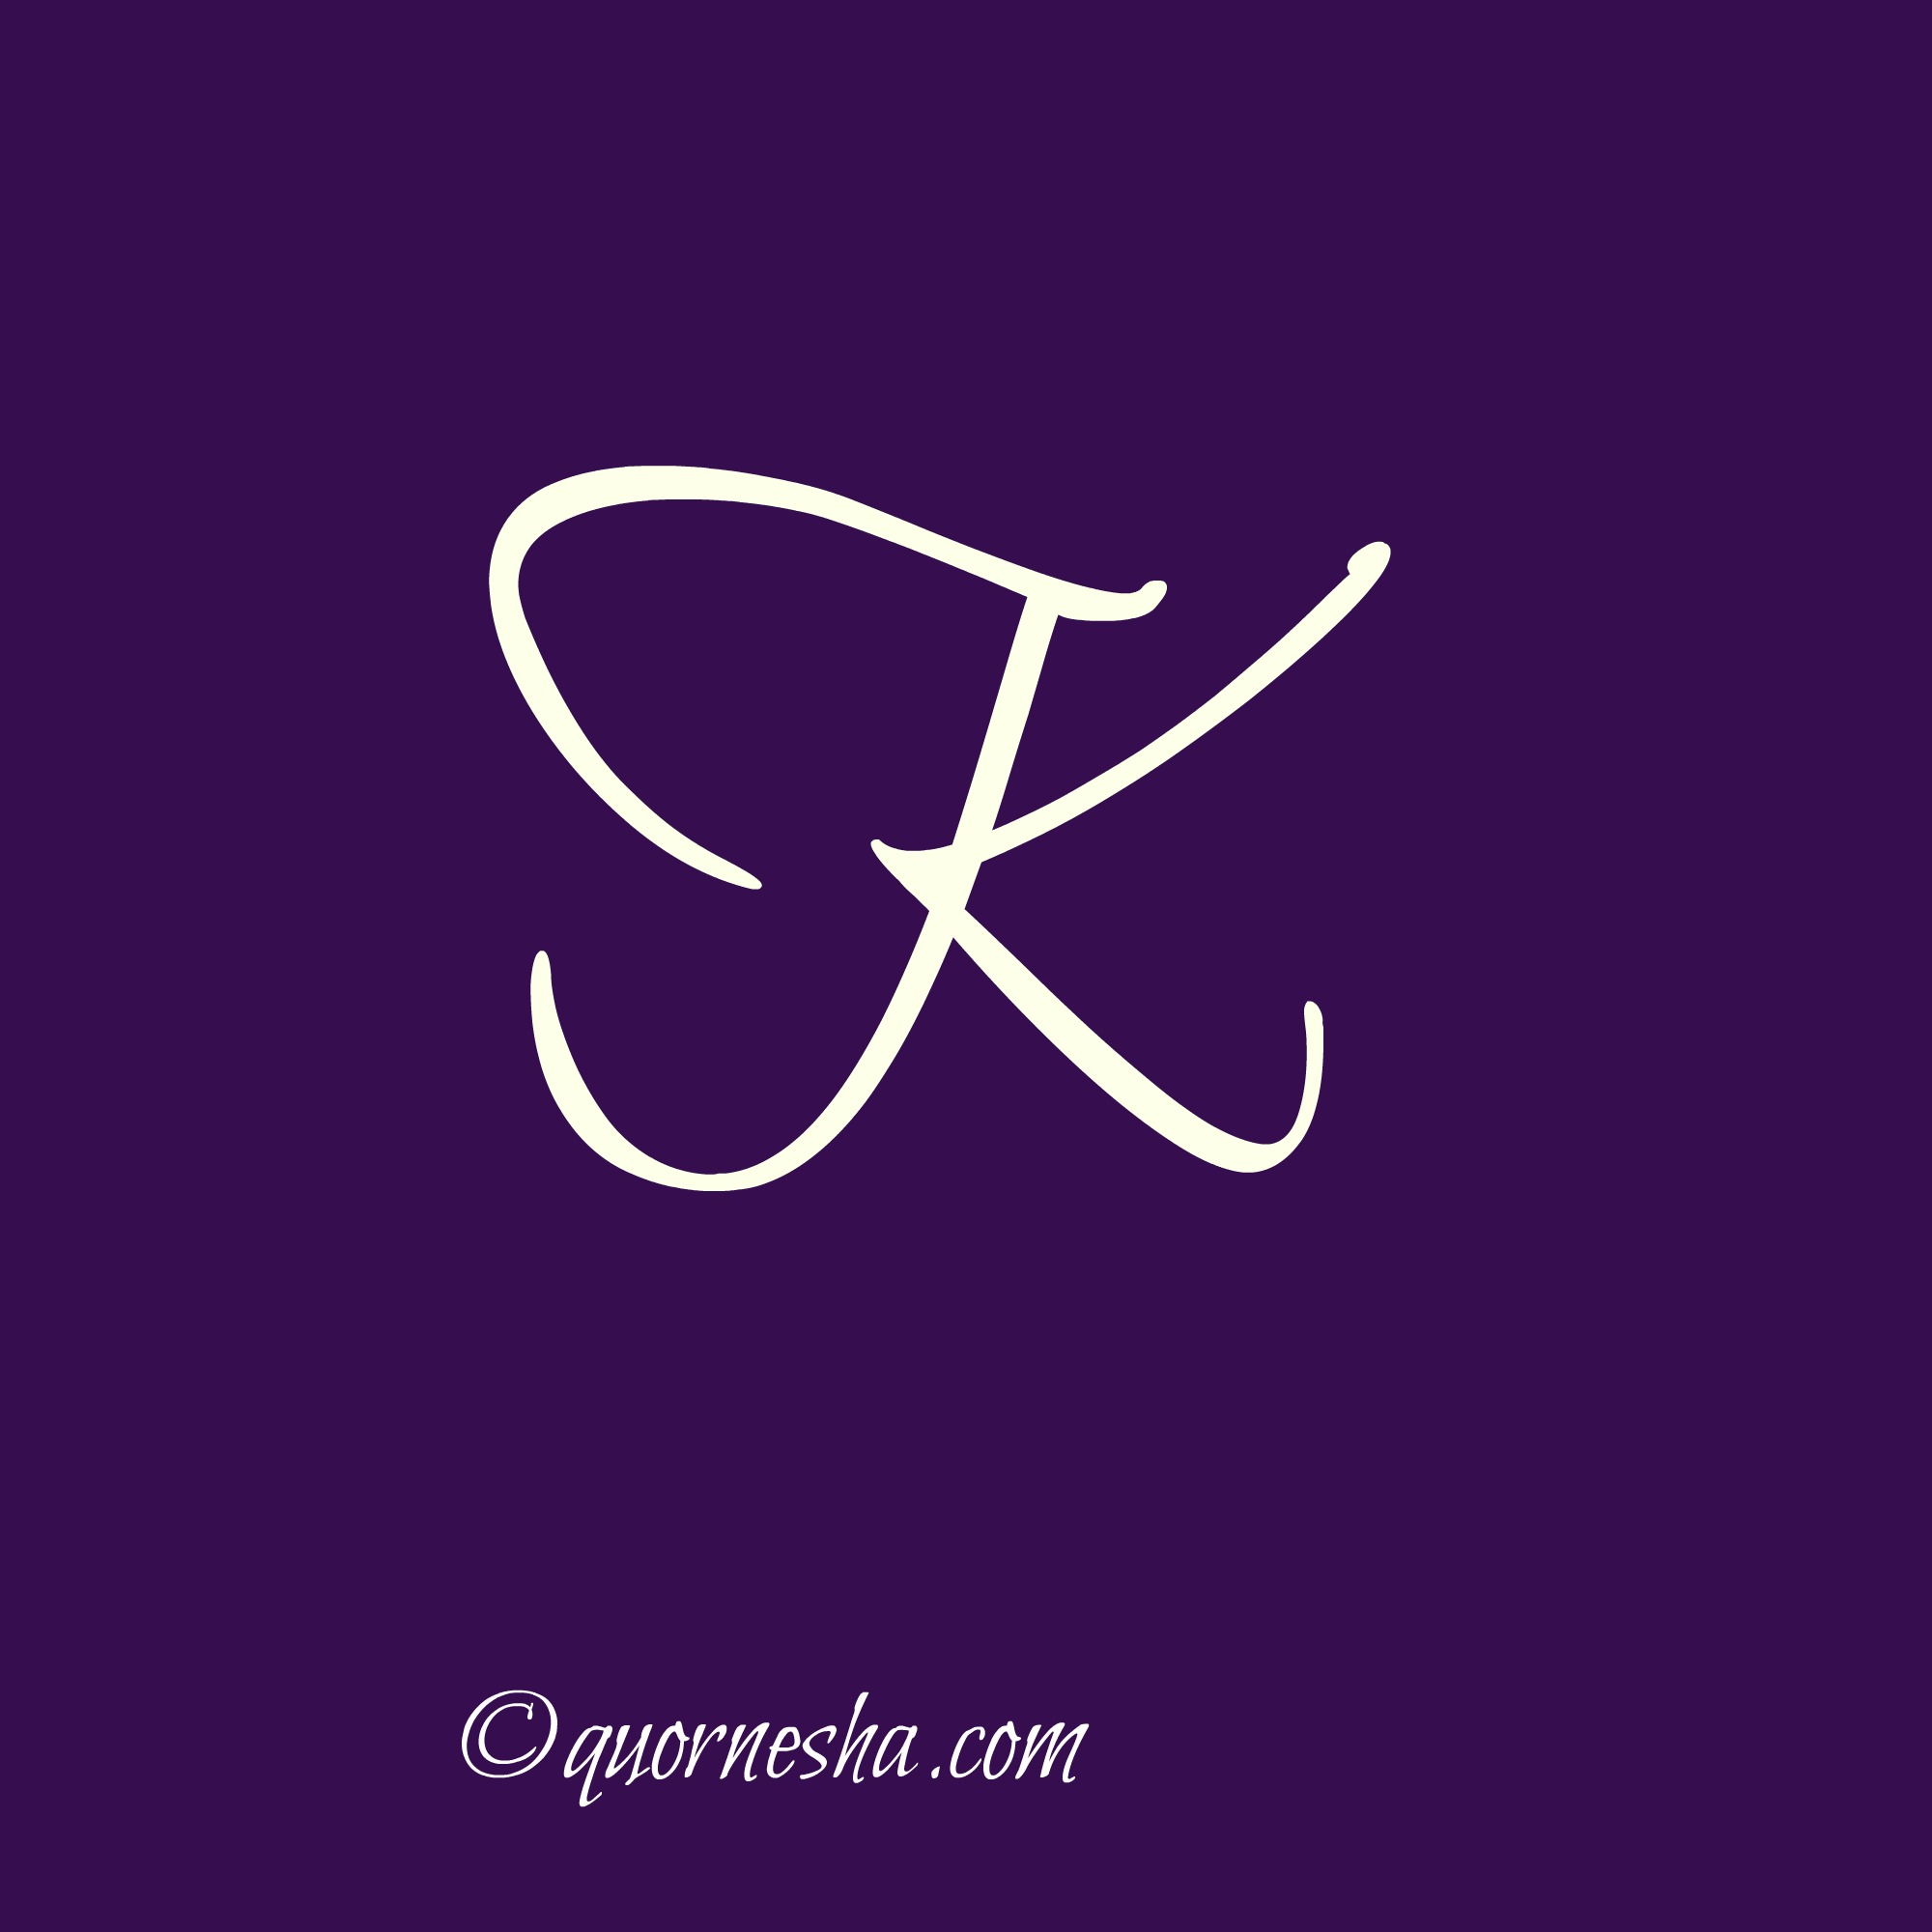 The Letter K Symbolic Meaning Whispers Channels Prophecies Visions